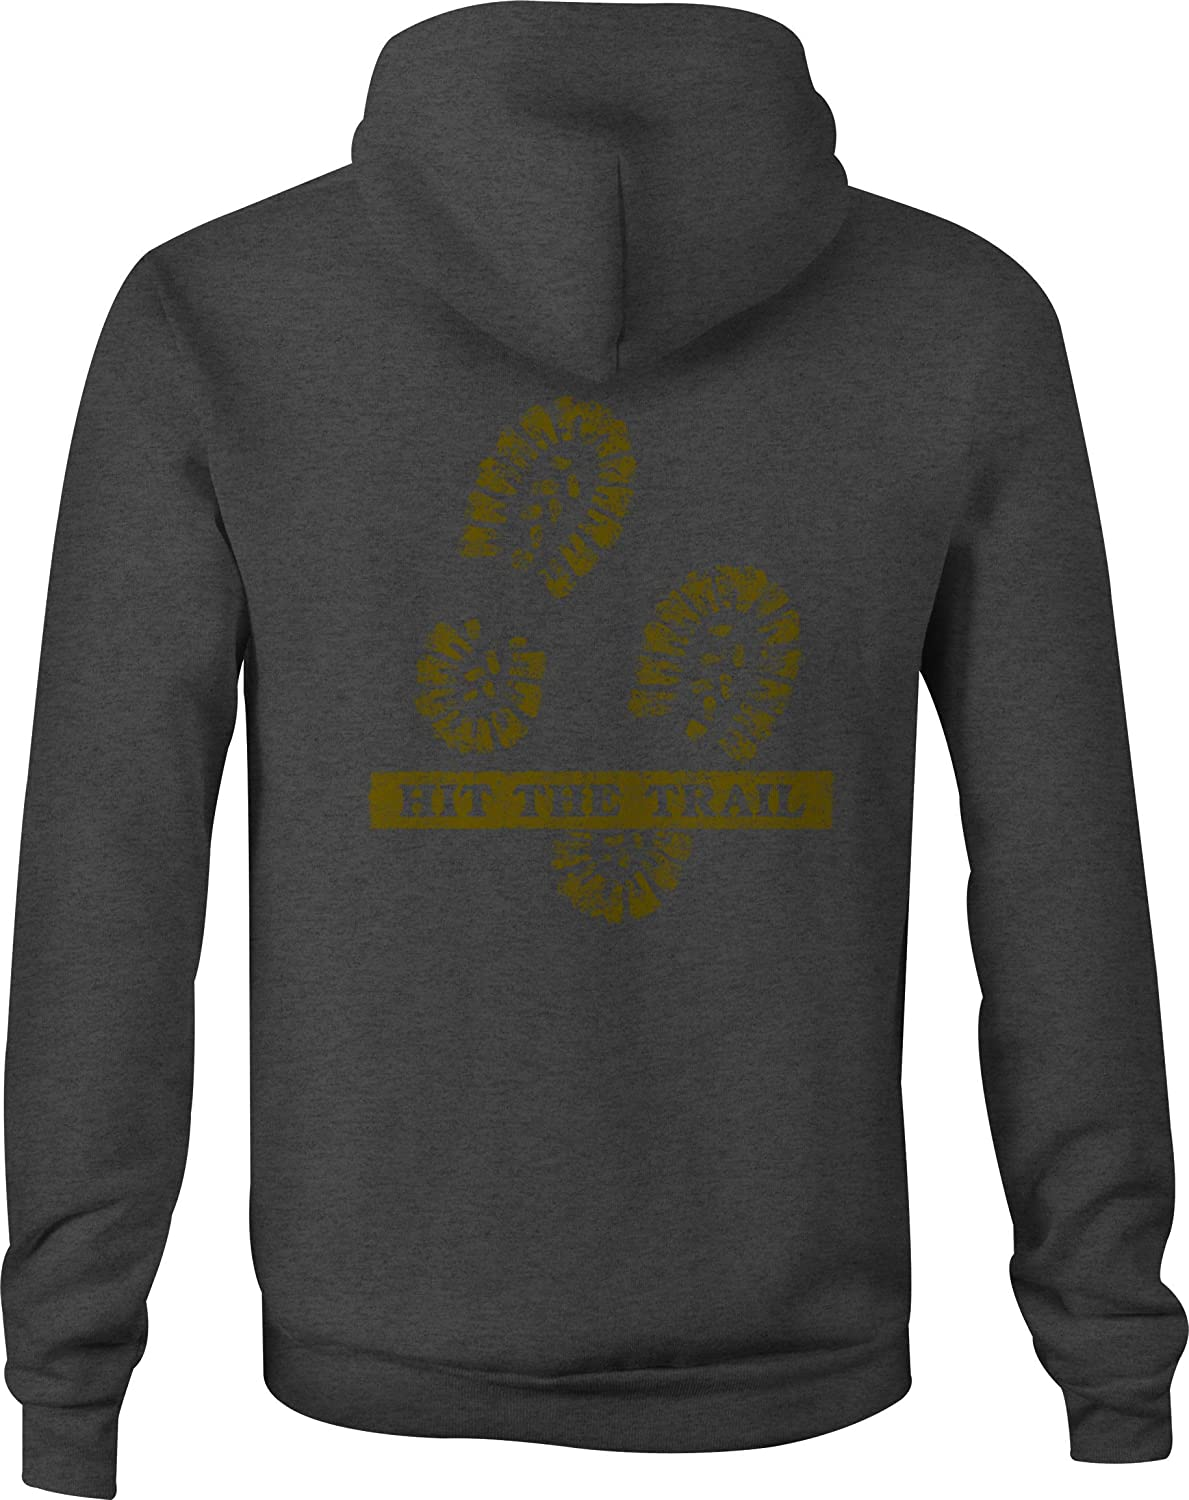 Zip Up Hoodie Hit The Trail Mud Boots Off Road Hiking Outdoors